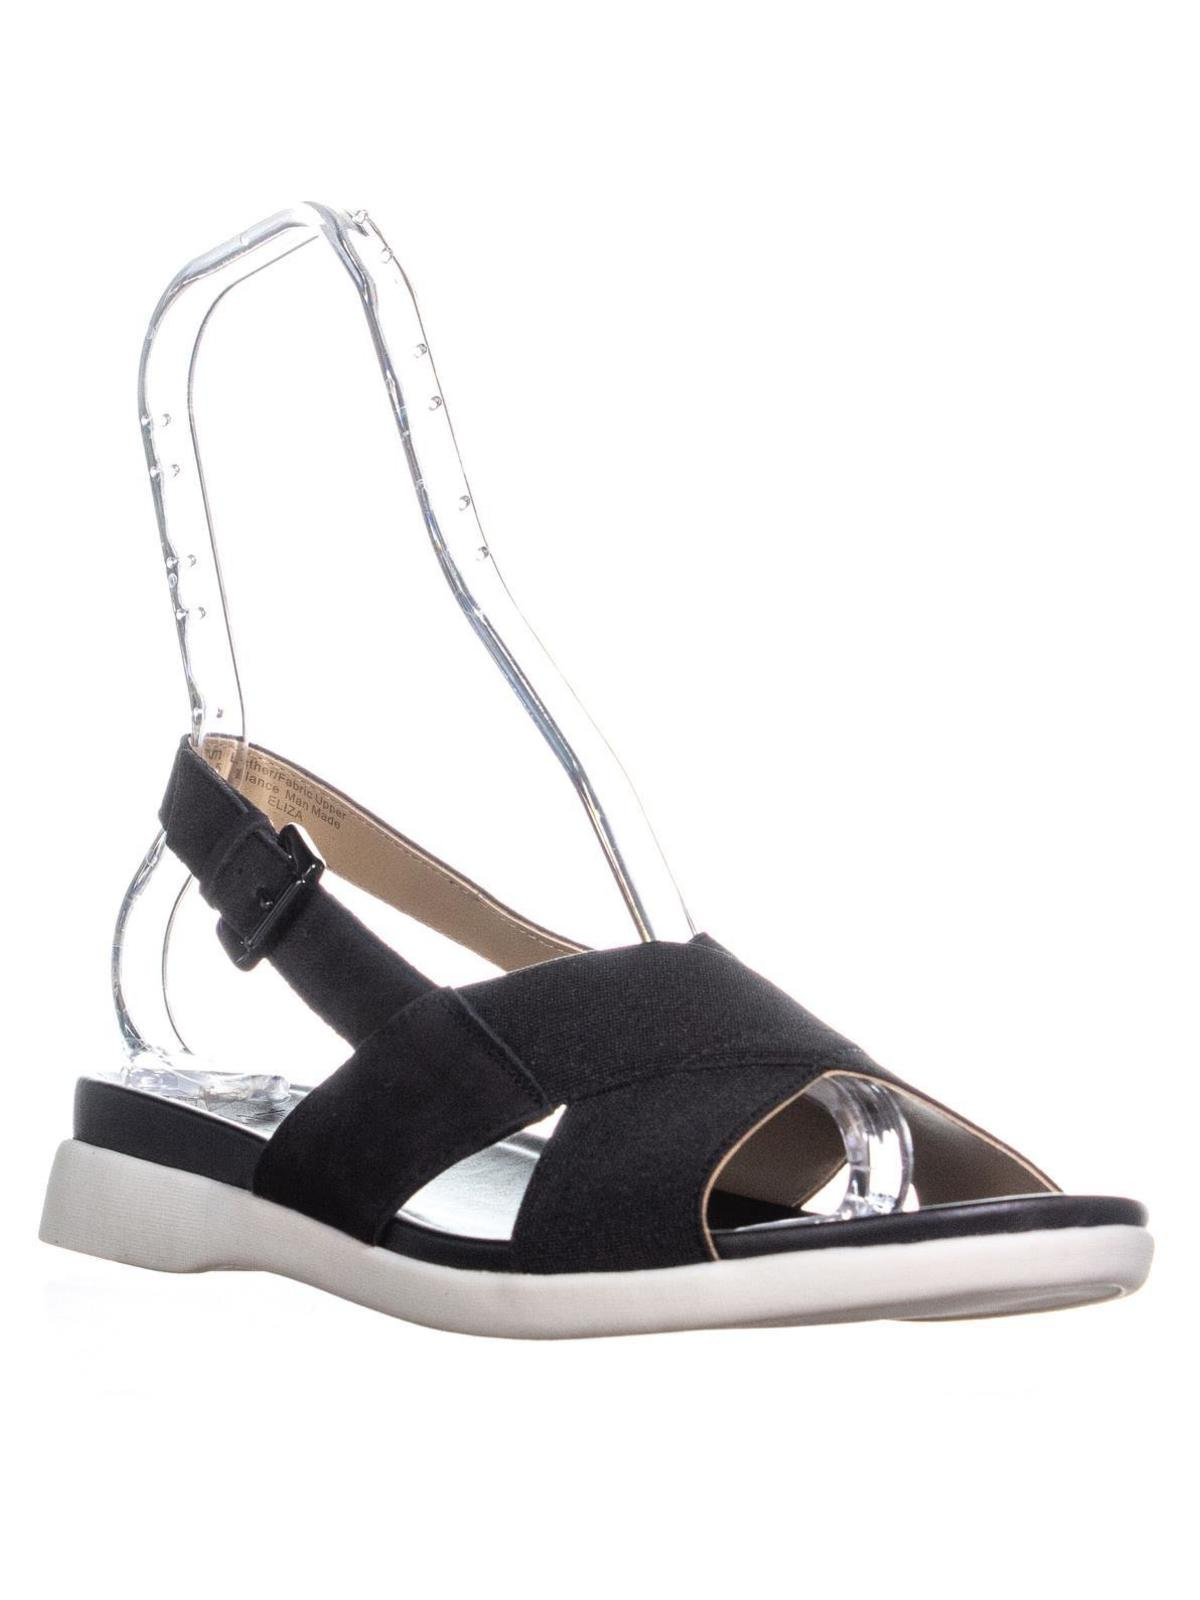 Womens Naturalizer Eliza Flat Ankle Strap Sandals, Black, 9.5 W US by Naturalizer